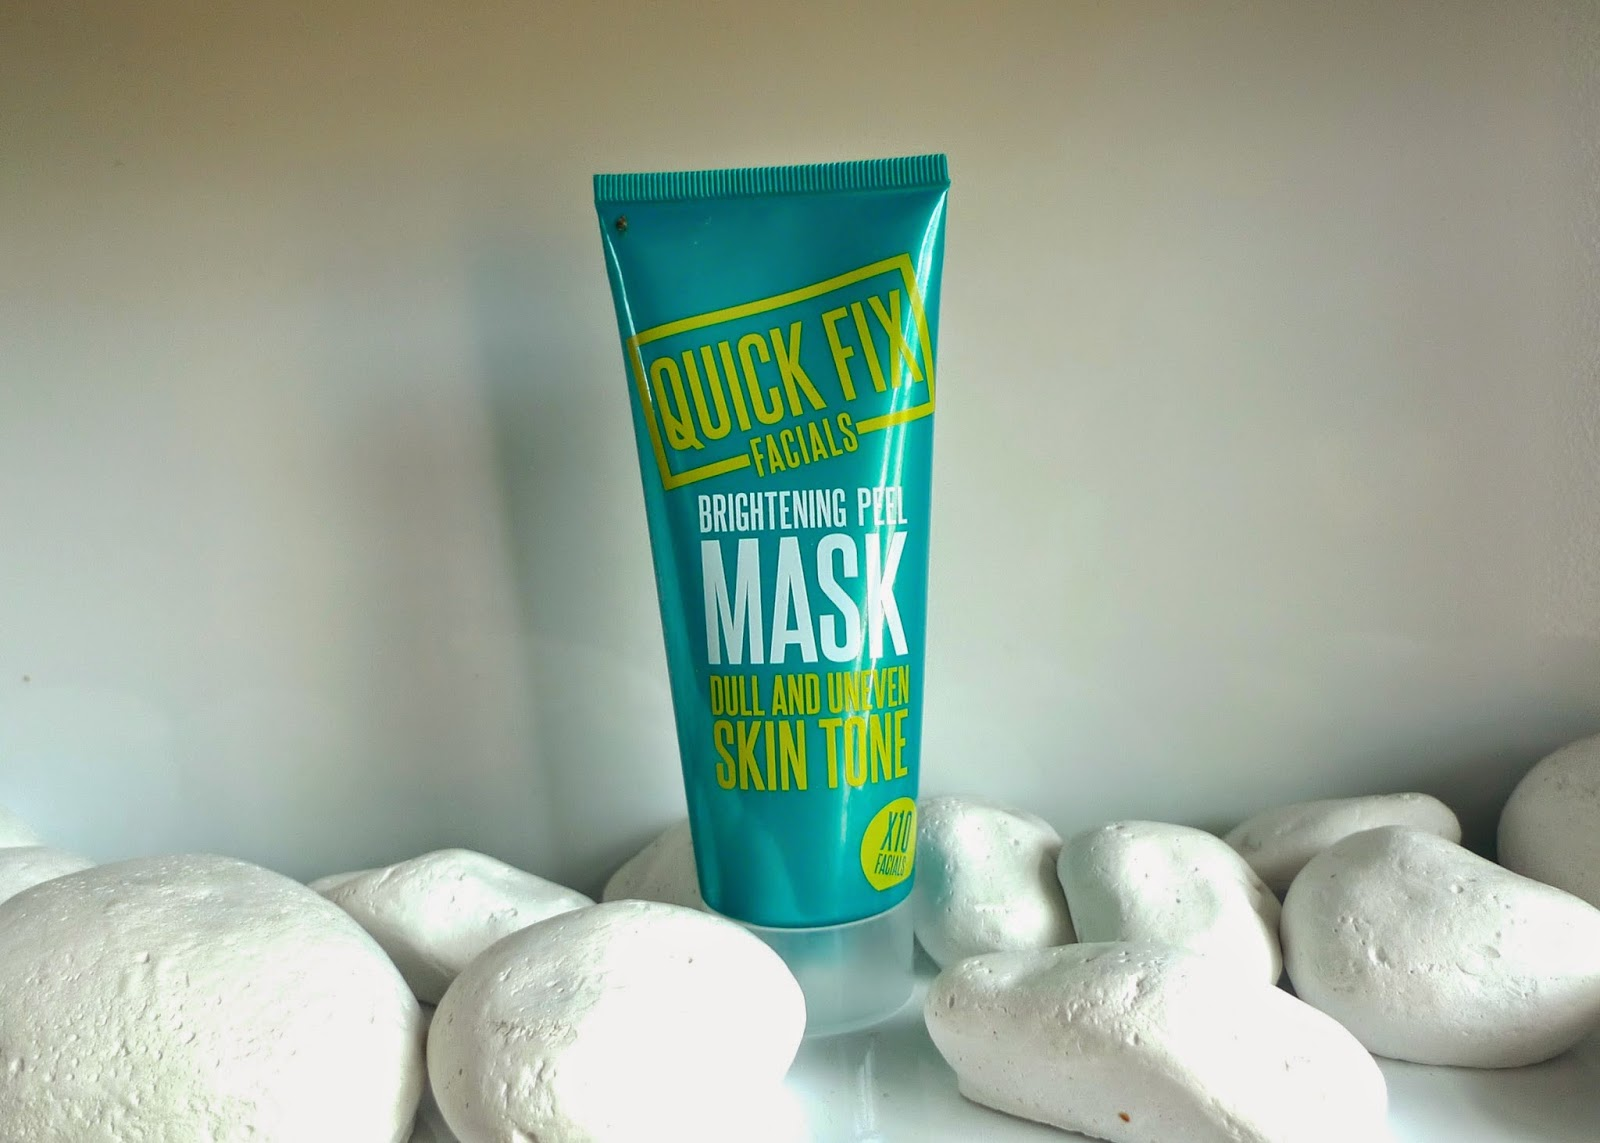 Quick Fix Facials Brightening Peel Mask | Review for dull and uneven skin